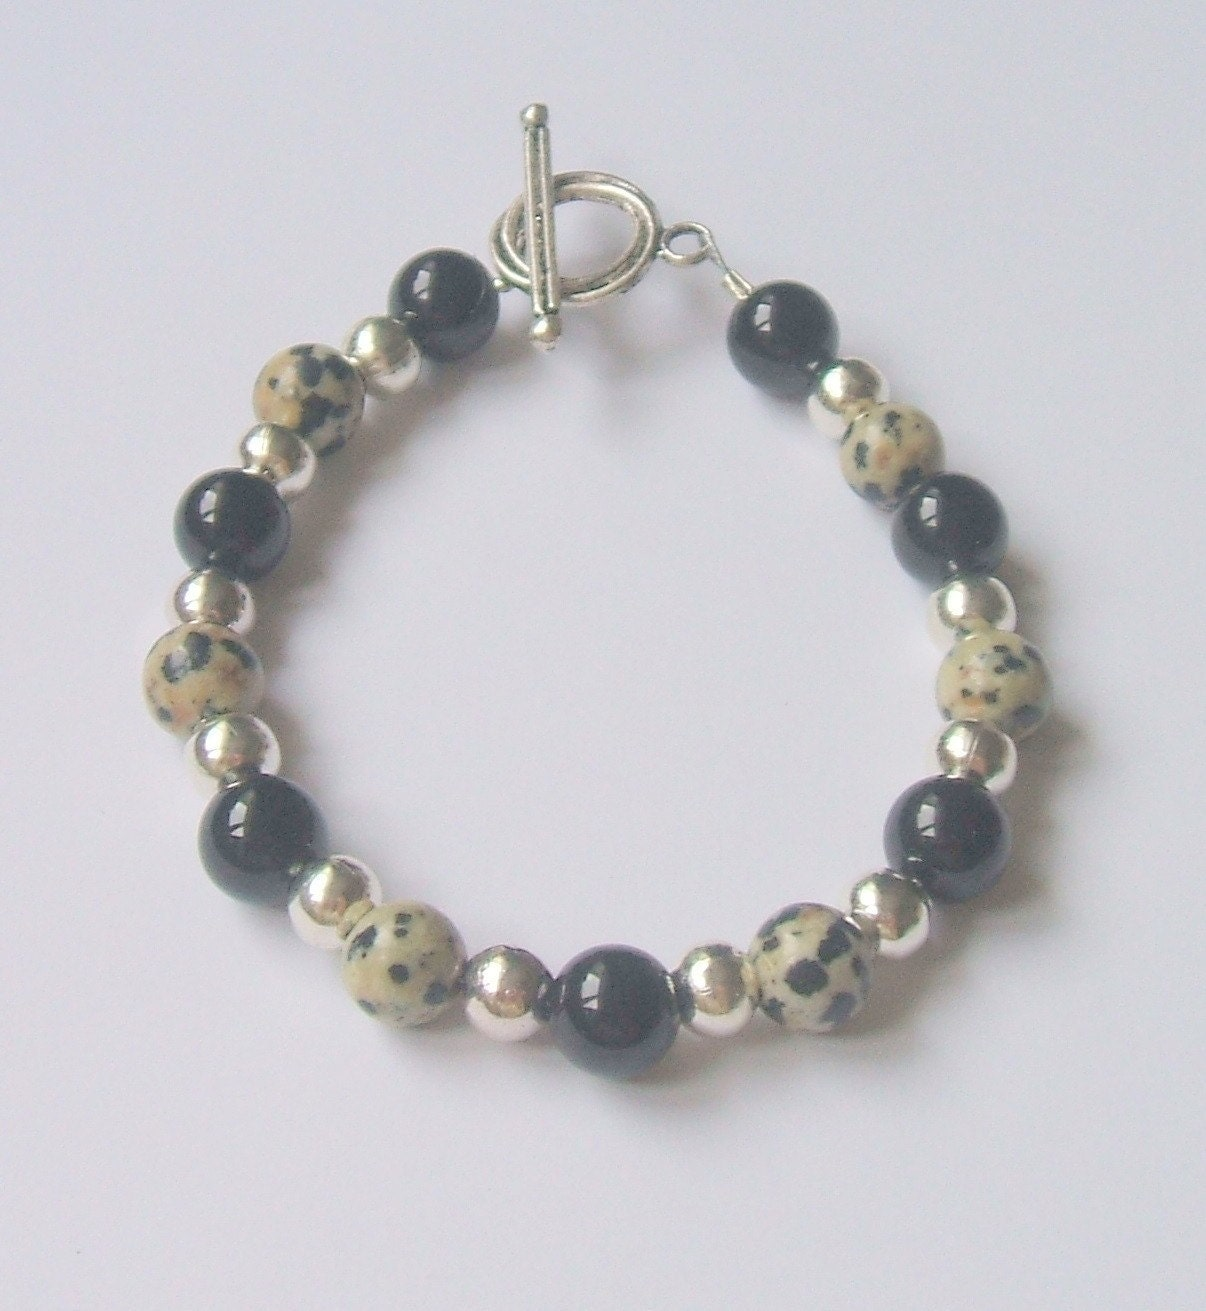 handmade bracelet by Deelights